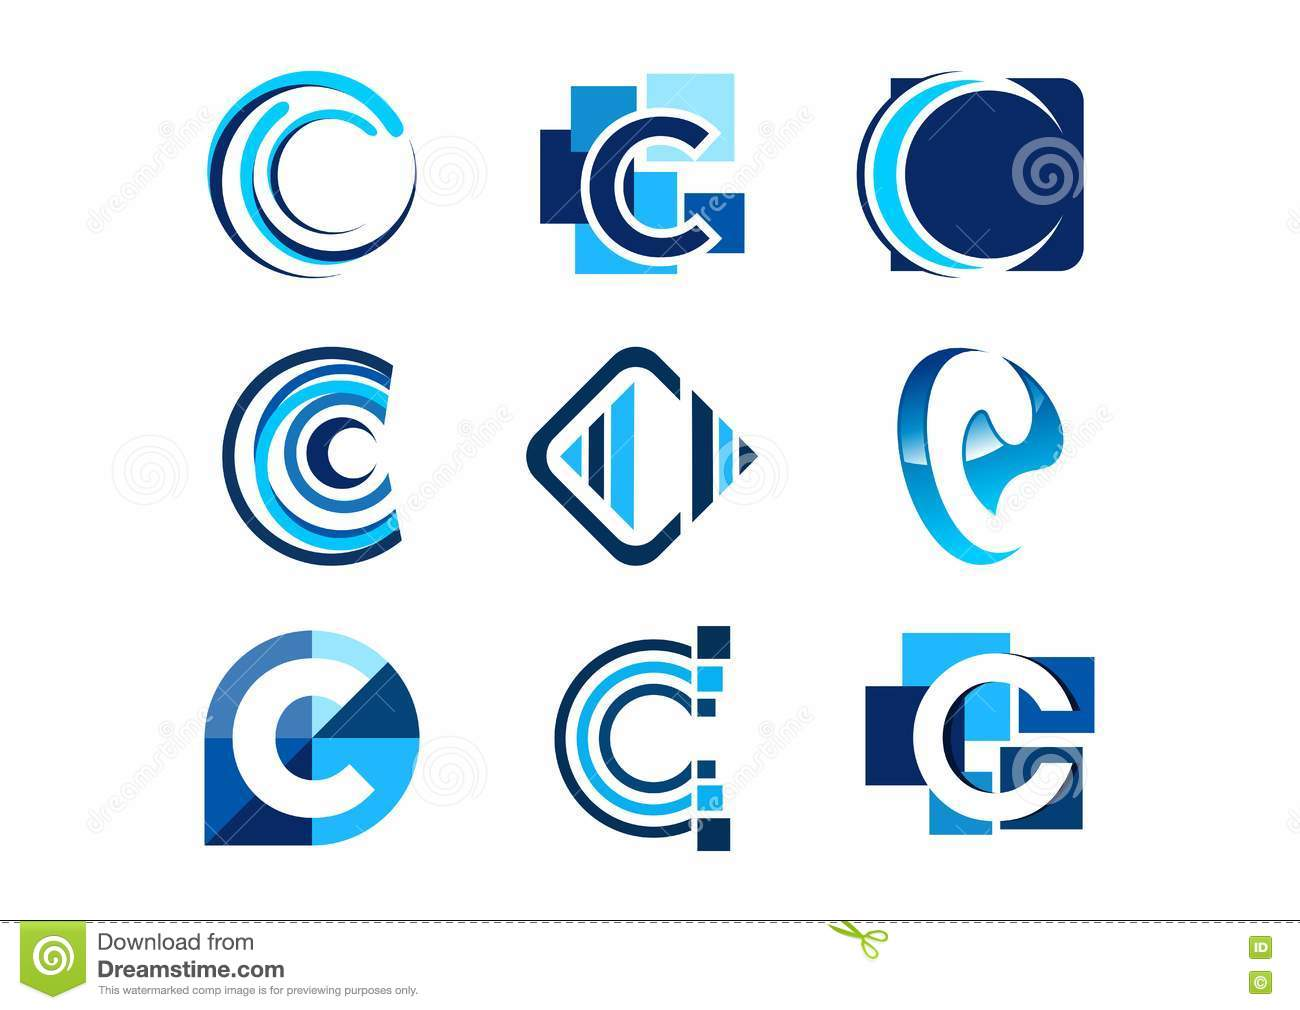 Letter c logo, concept abstract elements company logos, set of abstract logos business collections symbol icon vector design